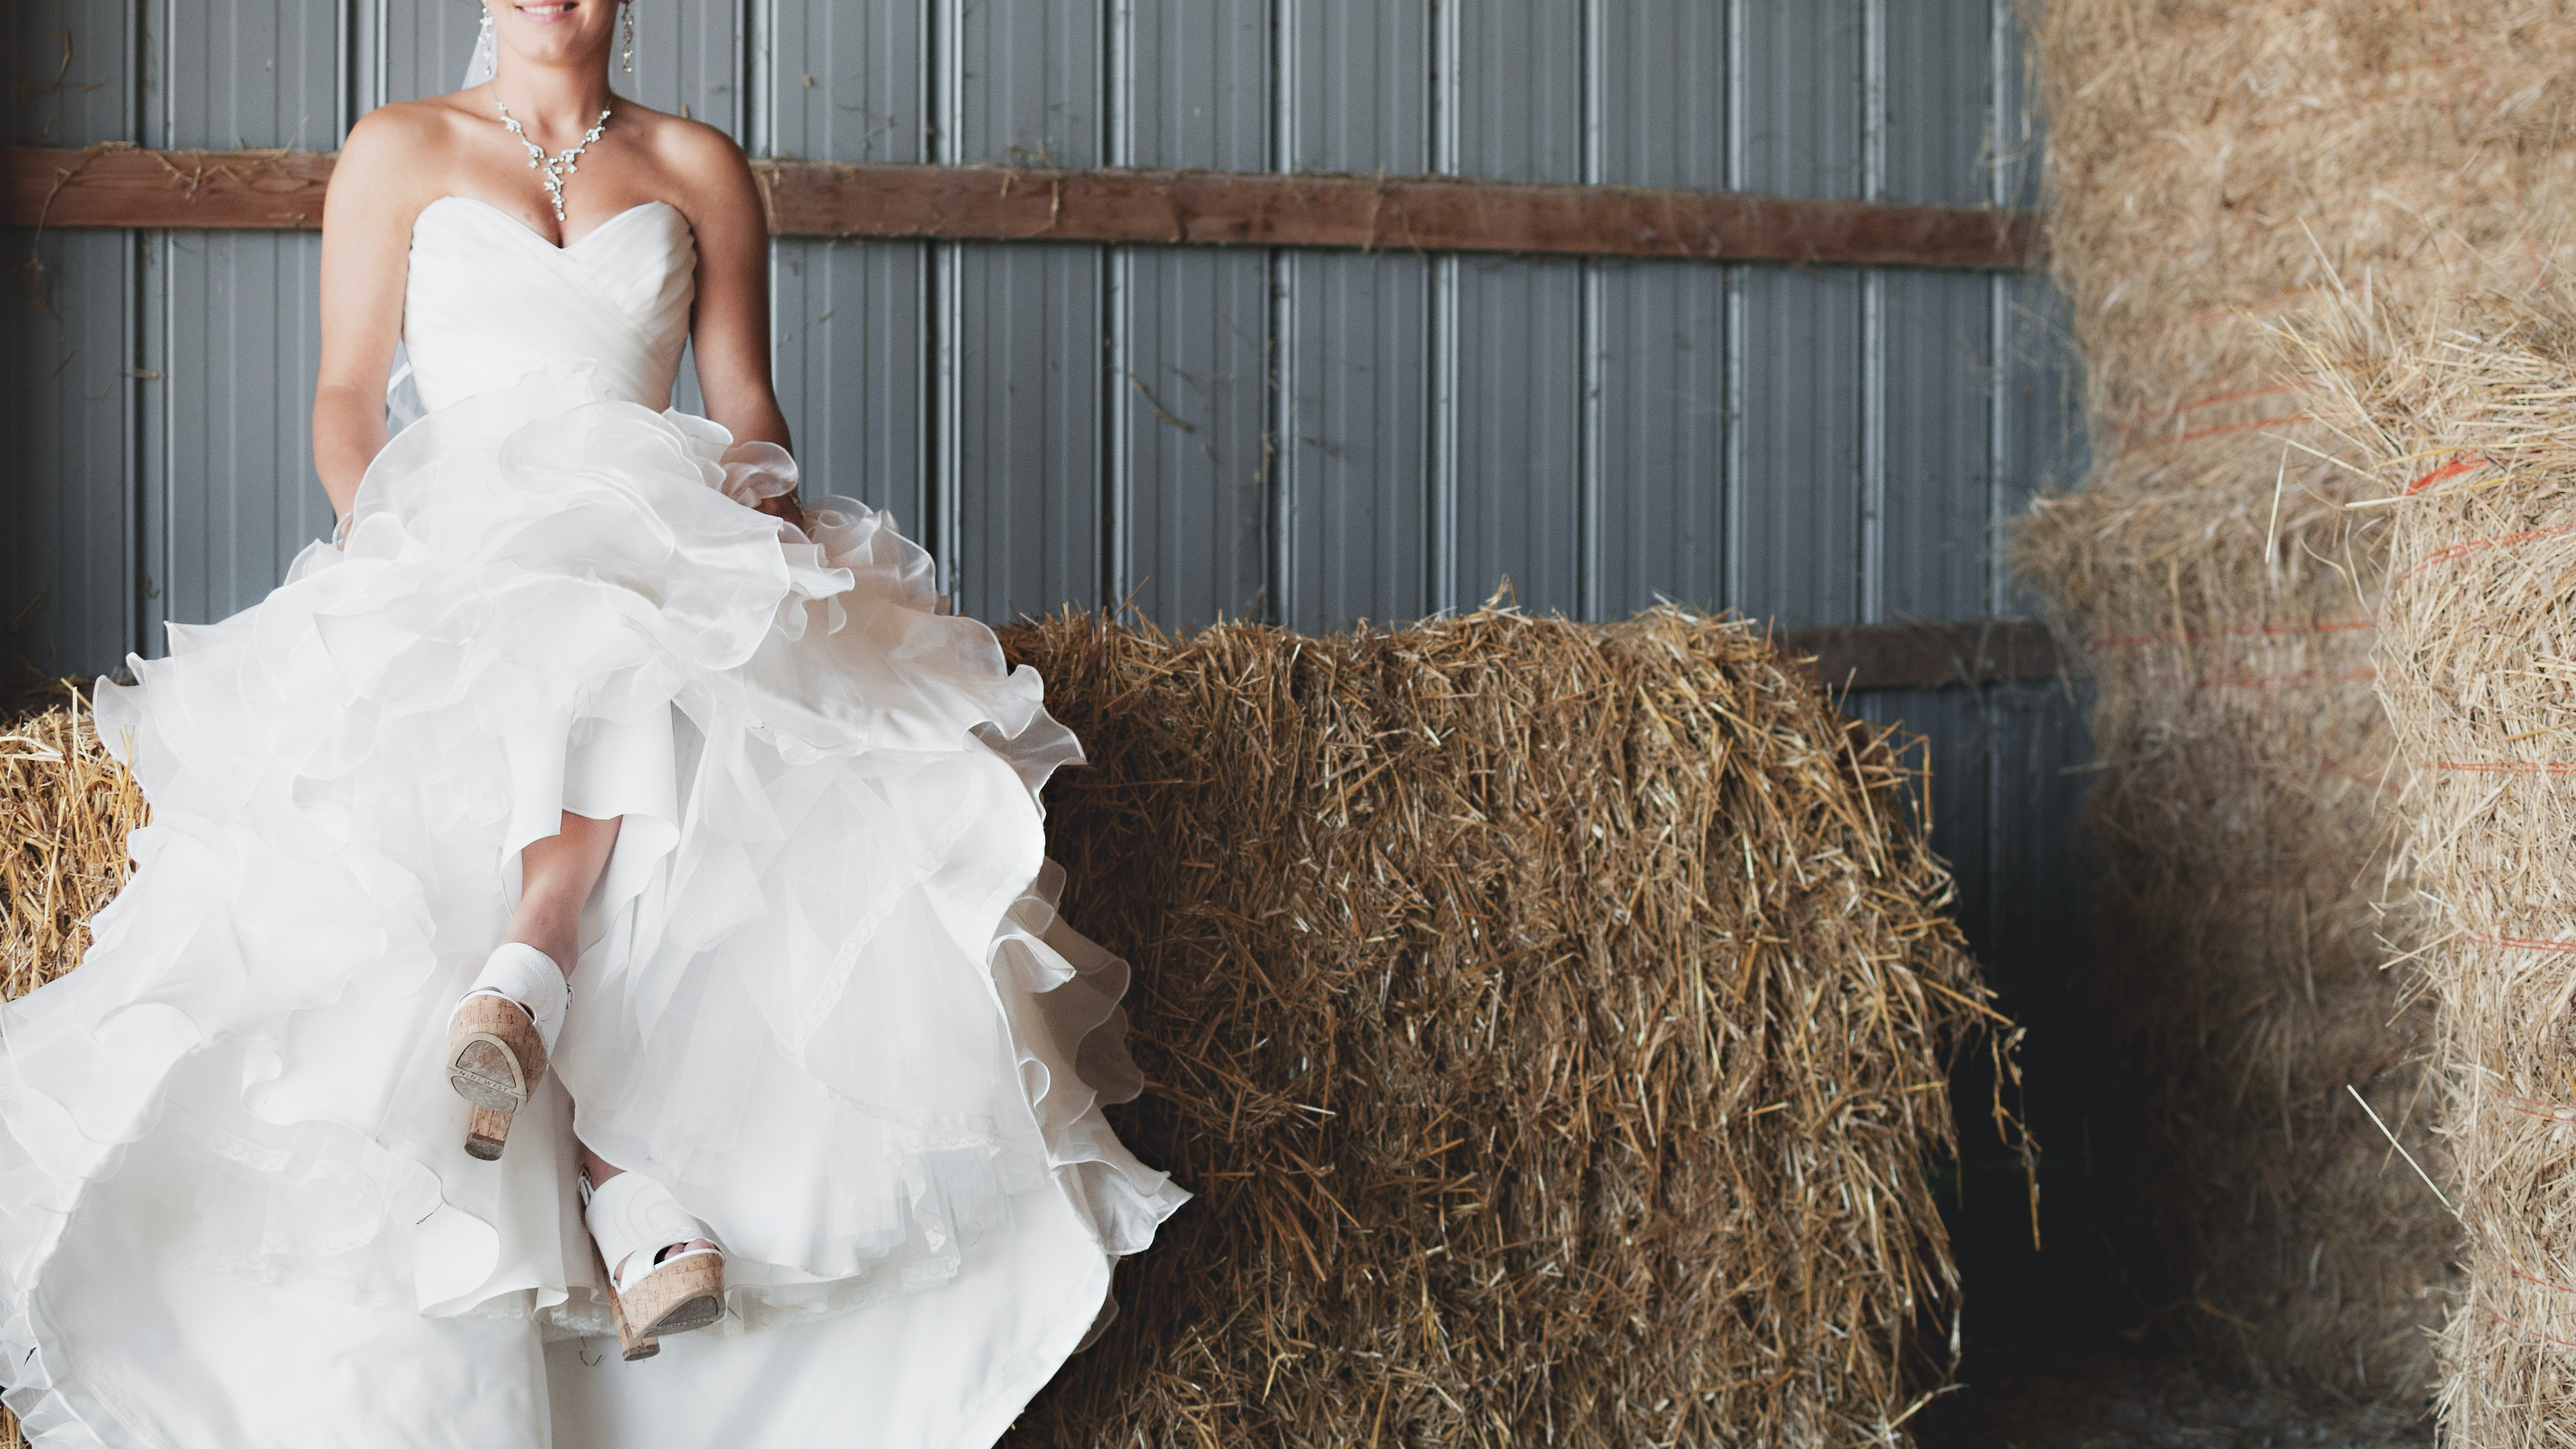 Happy bride in a wedding gown sits atop bales of hay in a barn